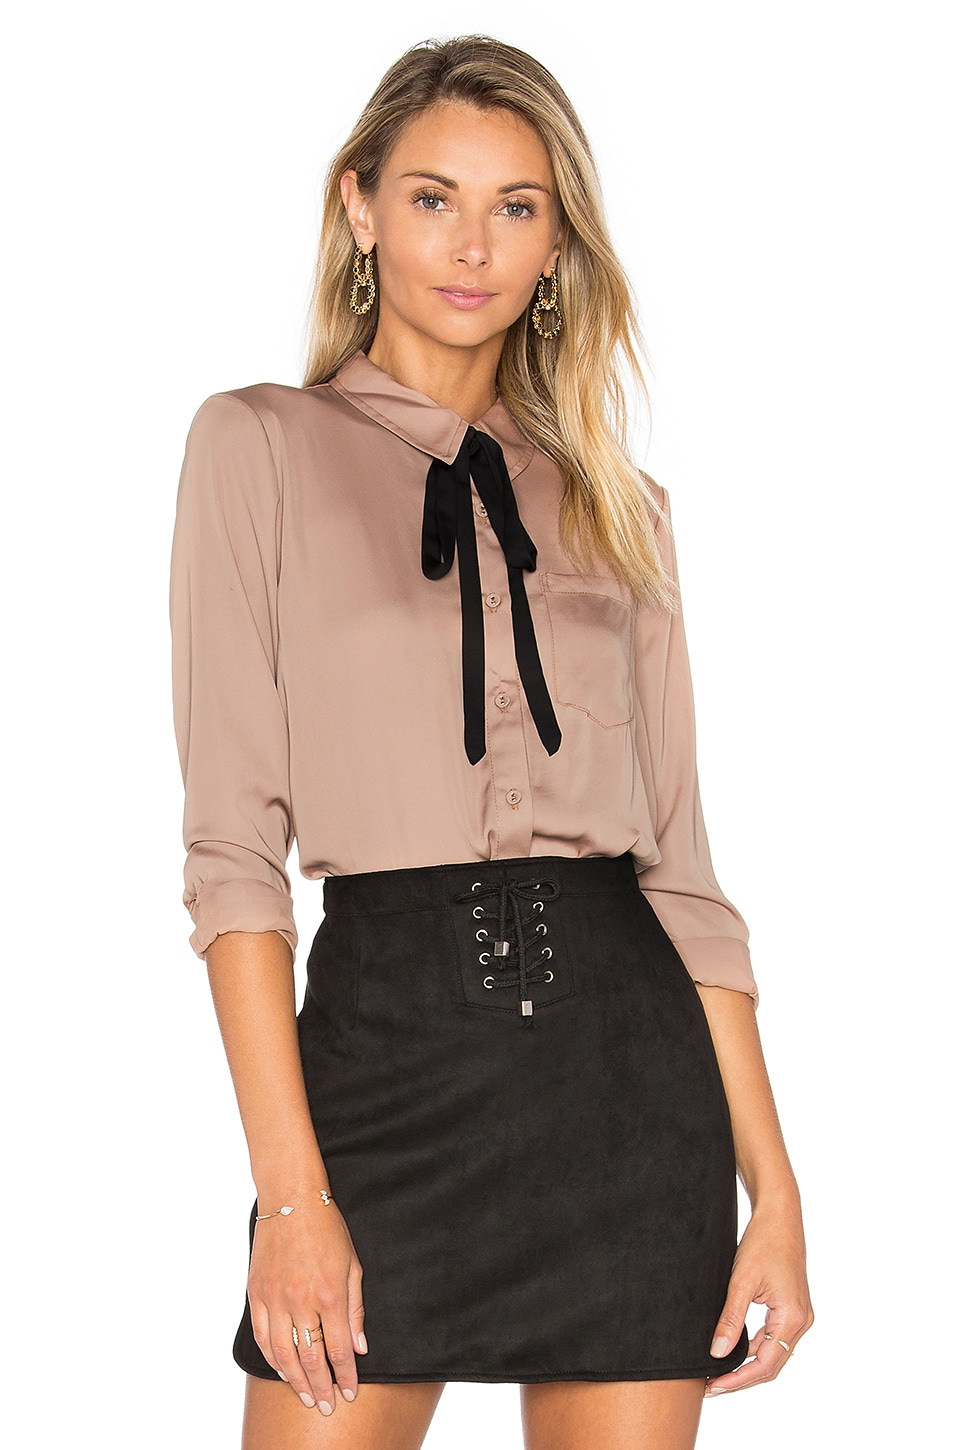 L'Academie The Classic Blouse in Camel